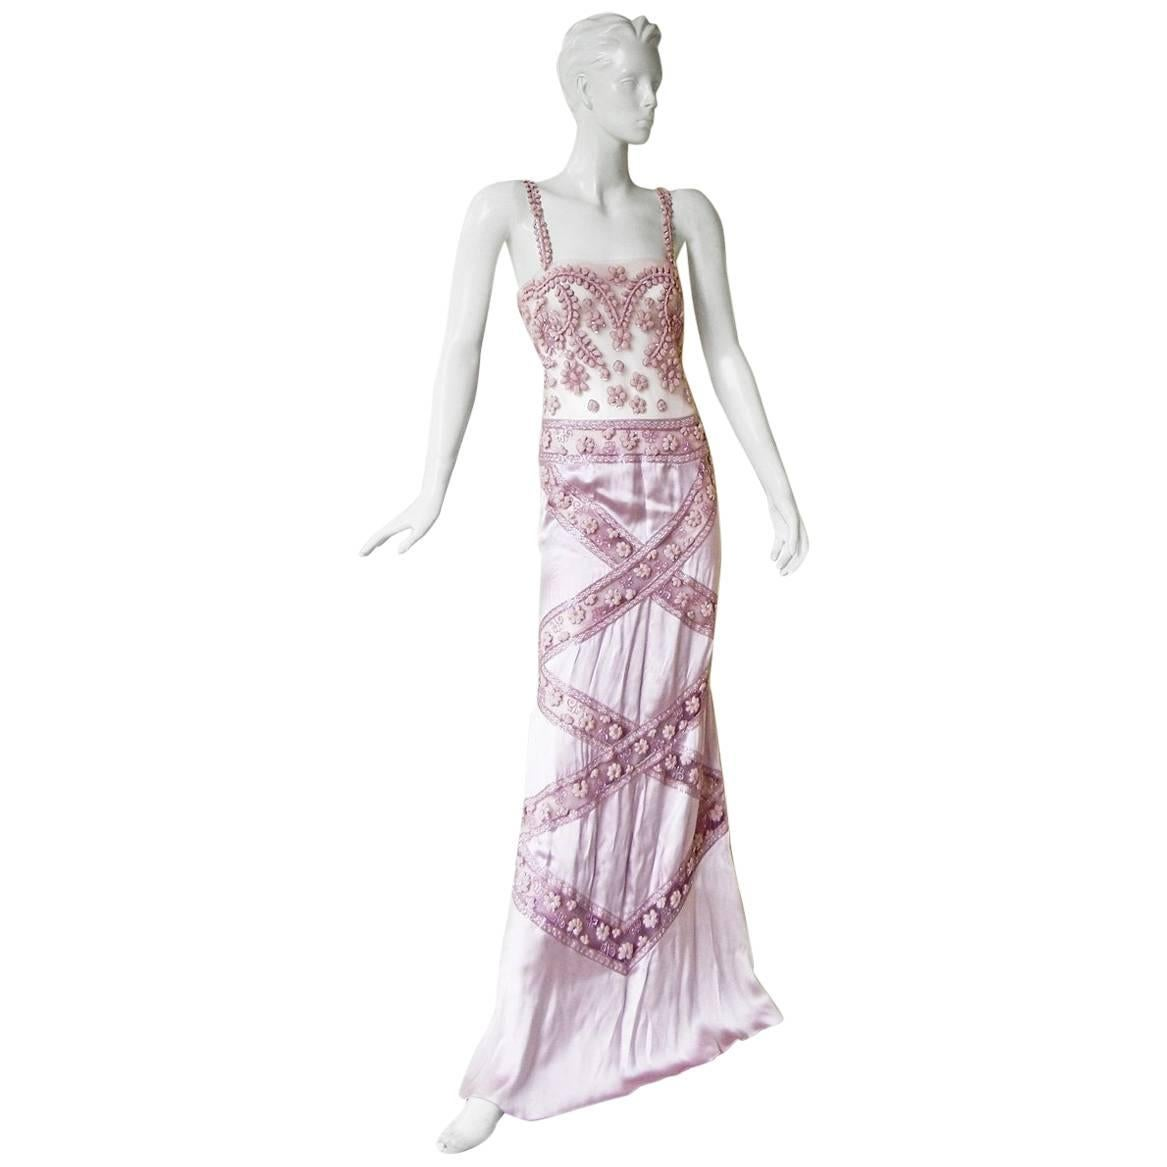 Valentino Hand Embroidered Lilac Runway Evening Gown Dress   New!